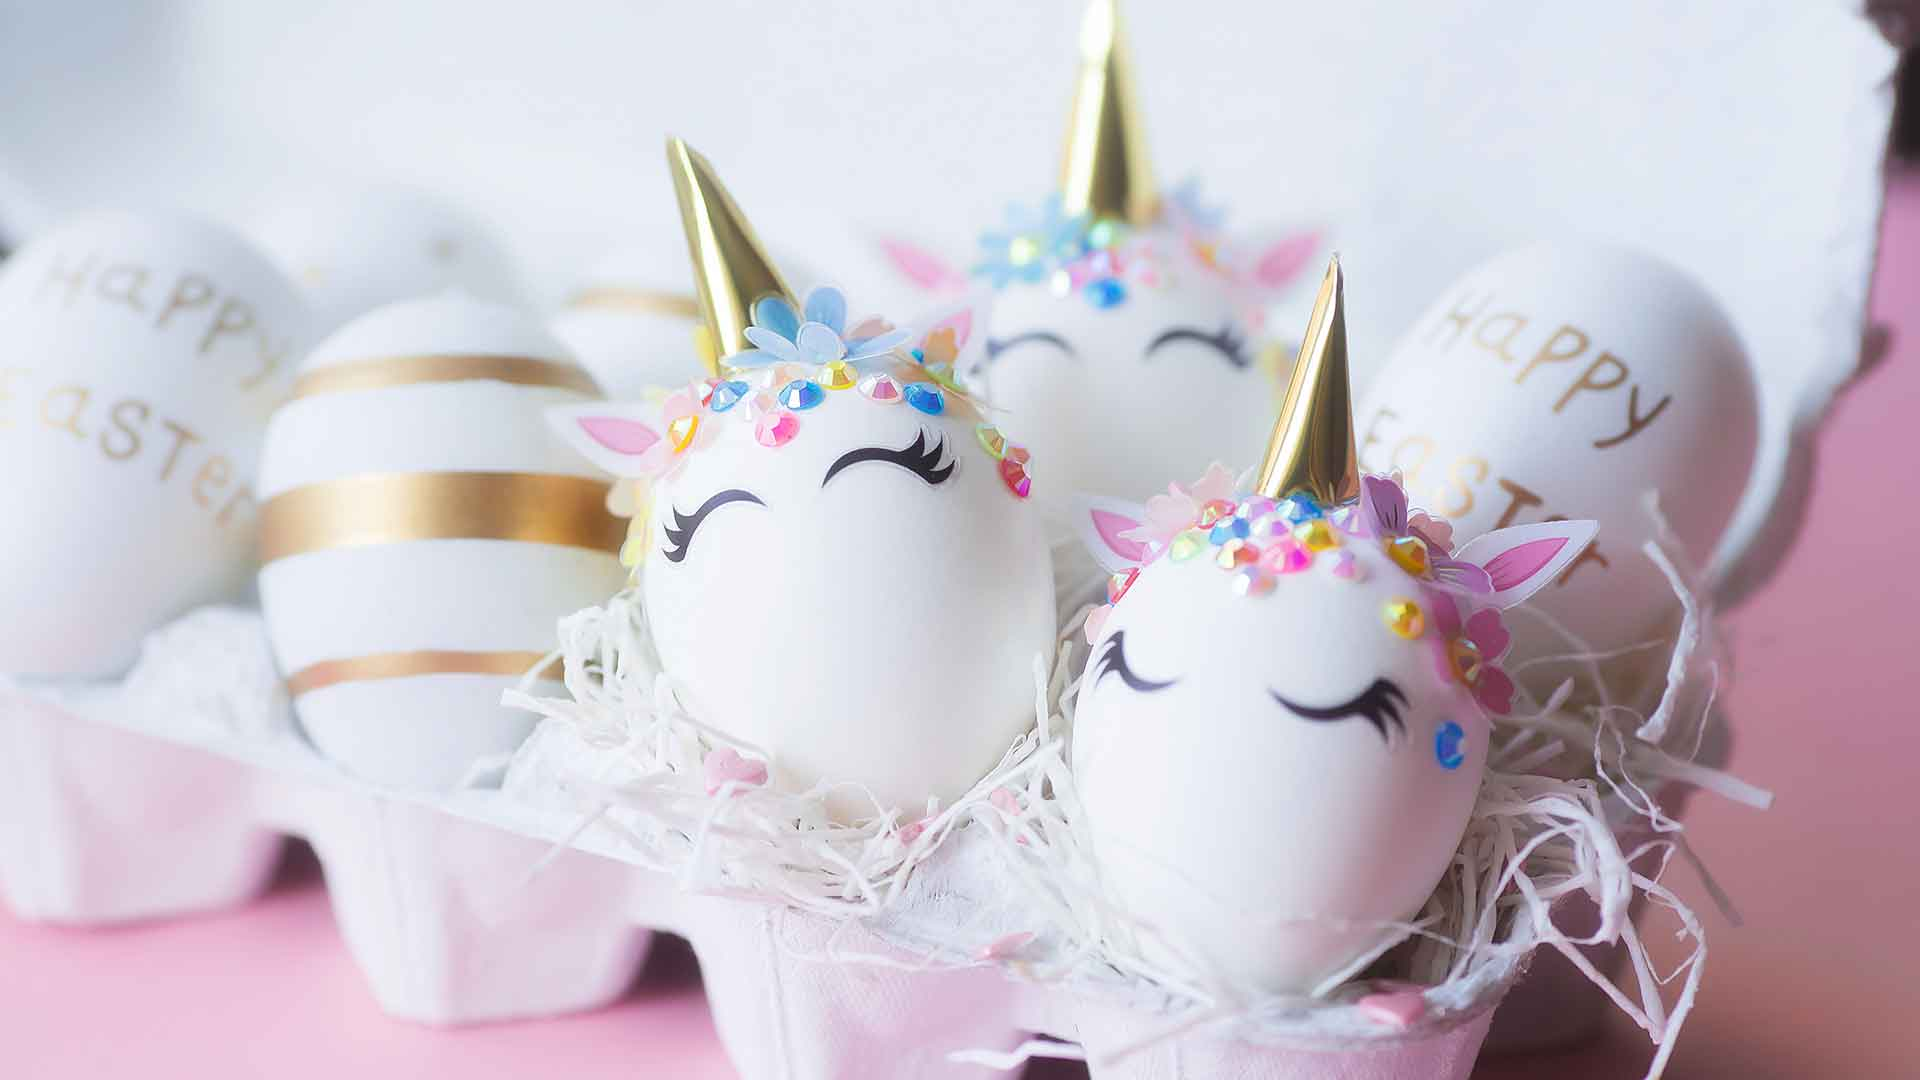 Easter Egg Hunt : Win a 7-night Bali or India holiday!